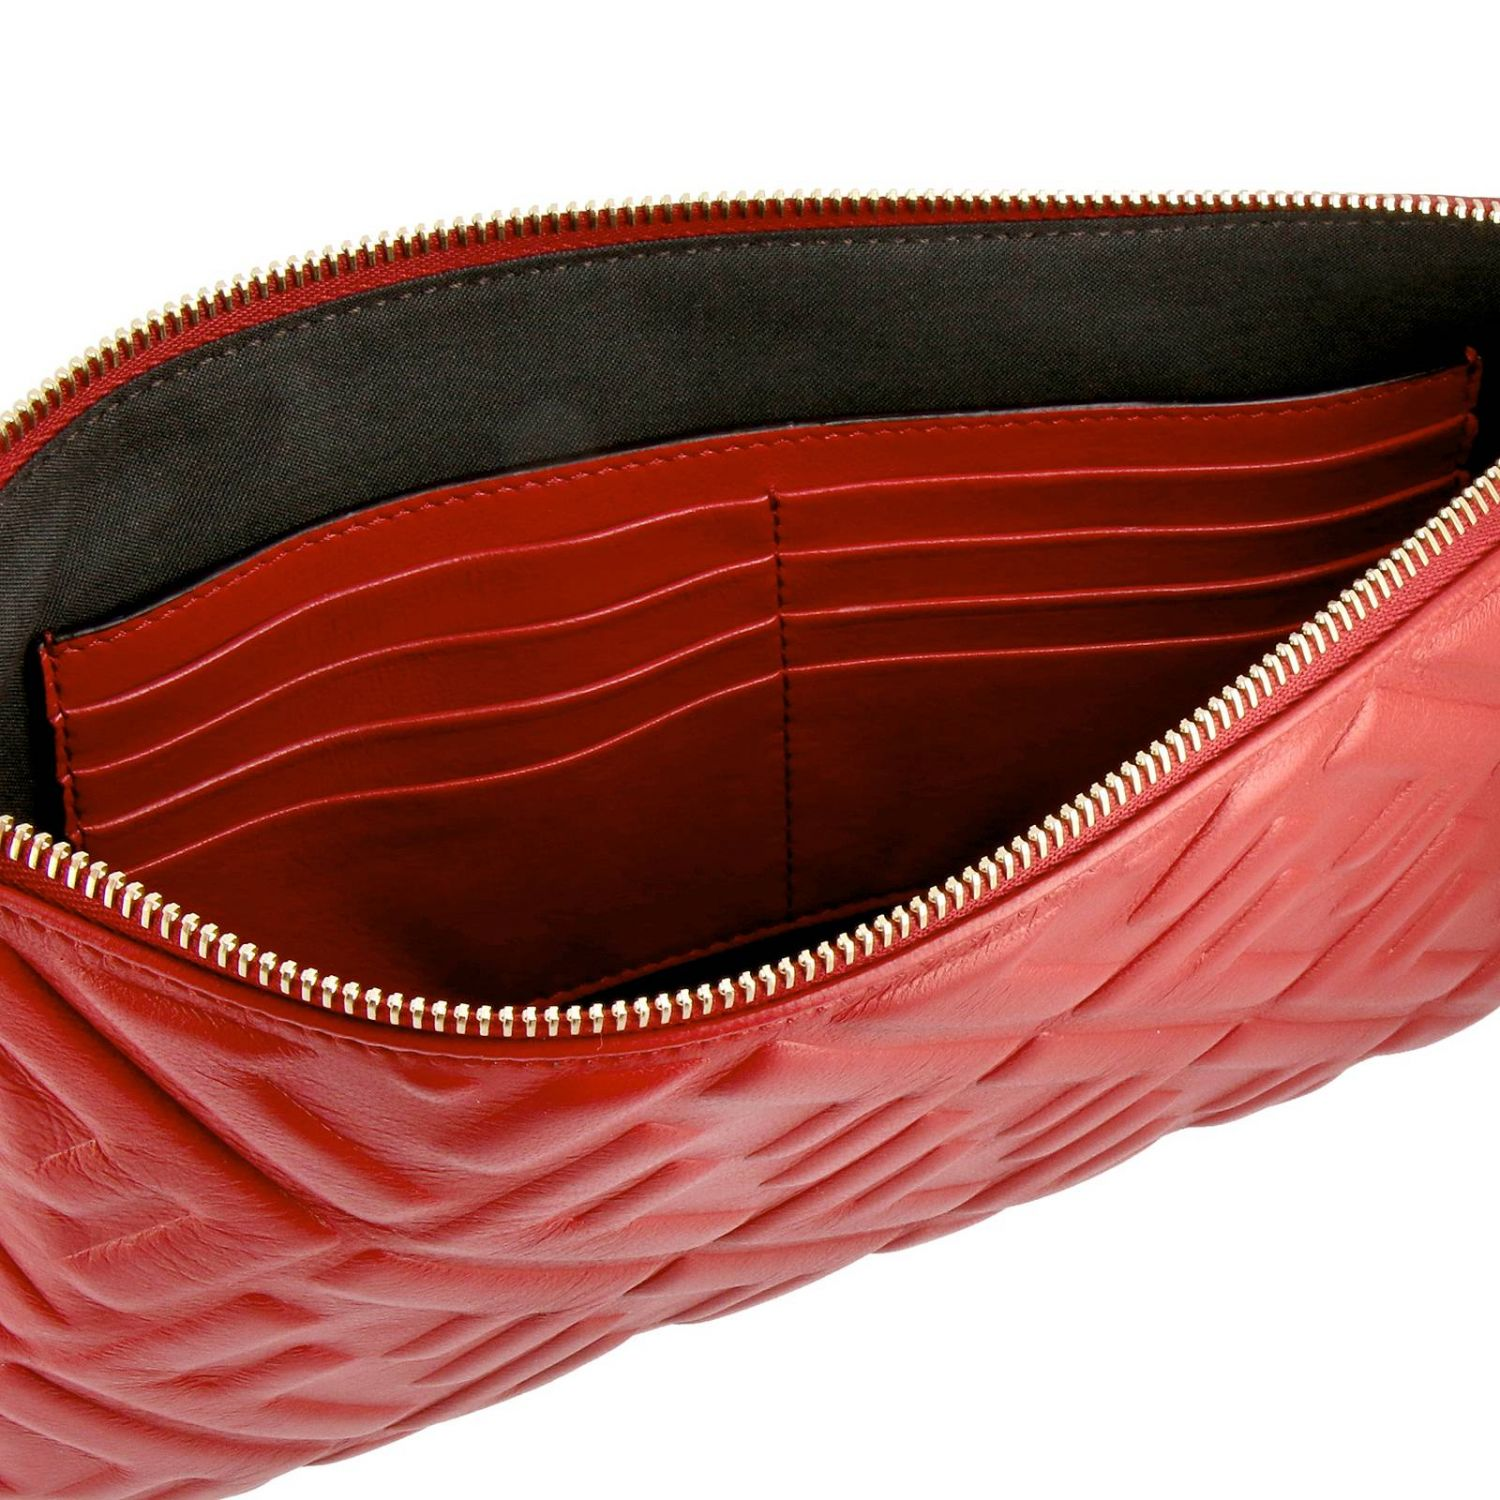 Fendi Large leather clutch bag with maxi FF monogram by Fendi embossed red 5